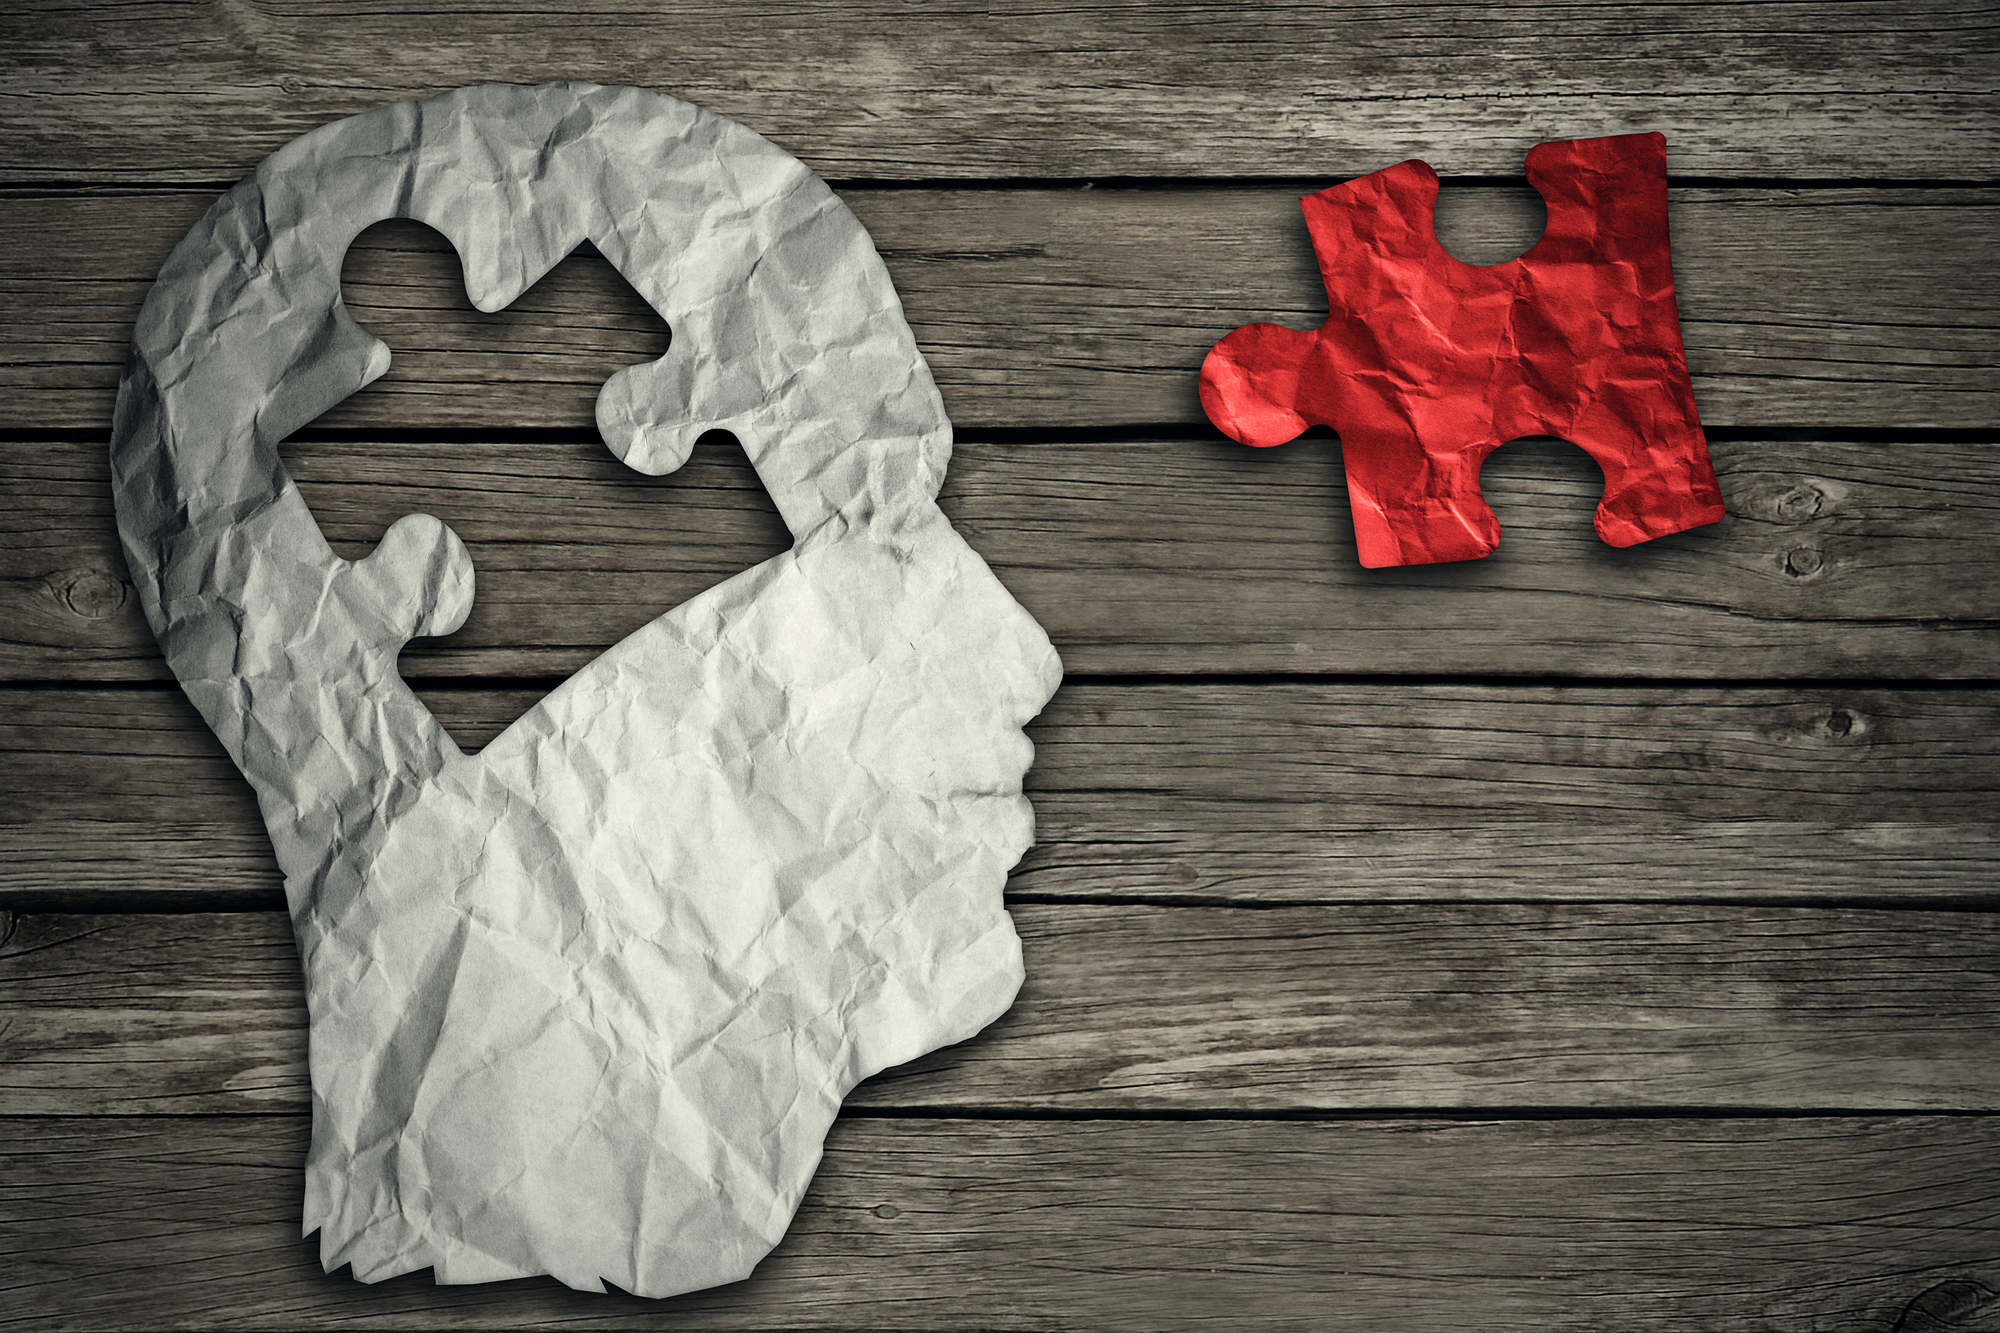 How Are Traumatic Brain Injuries Treated?